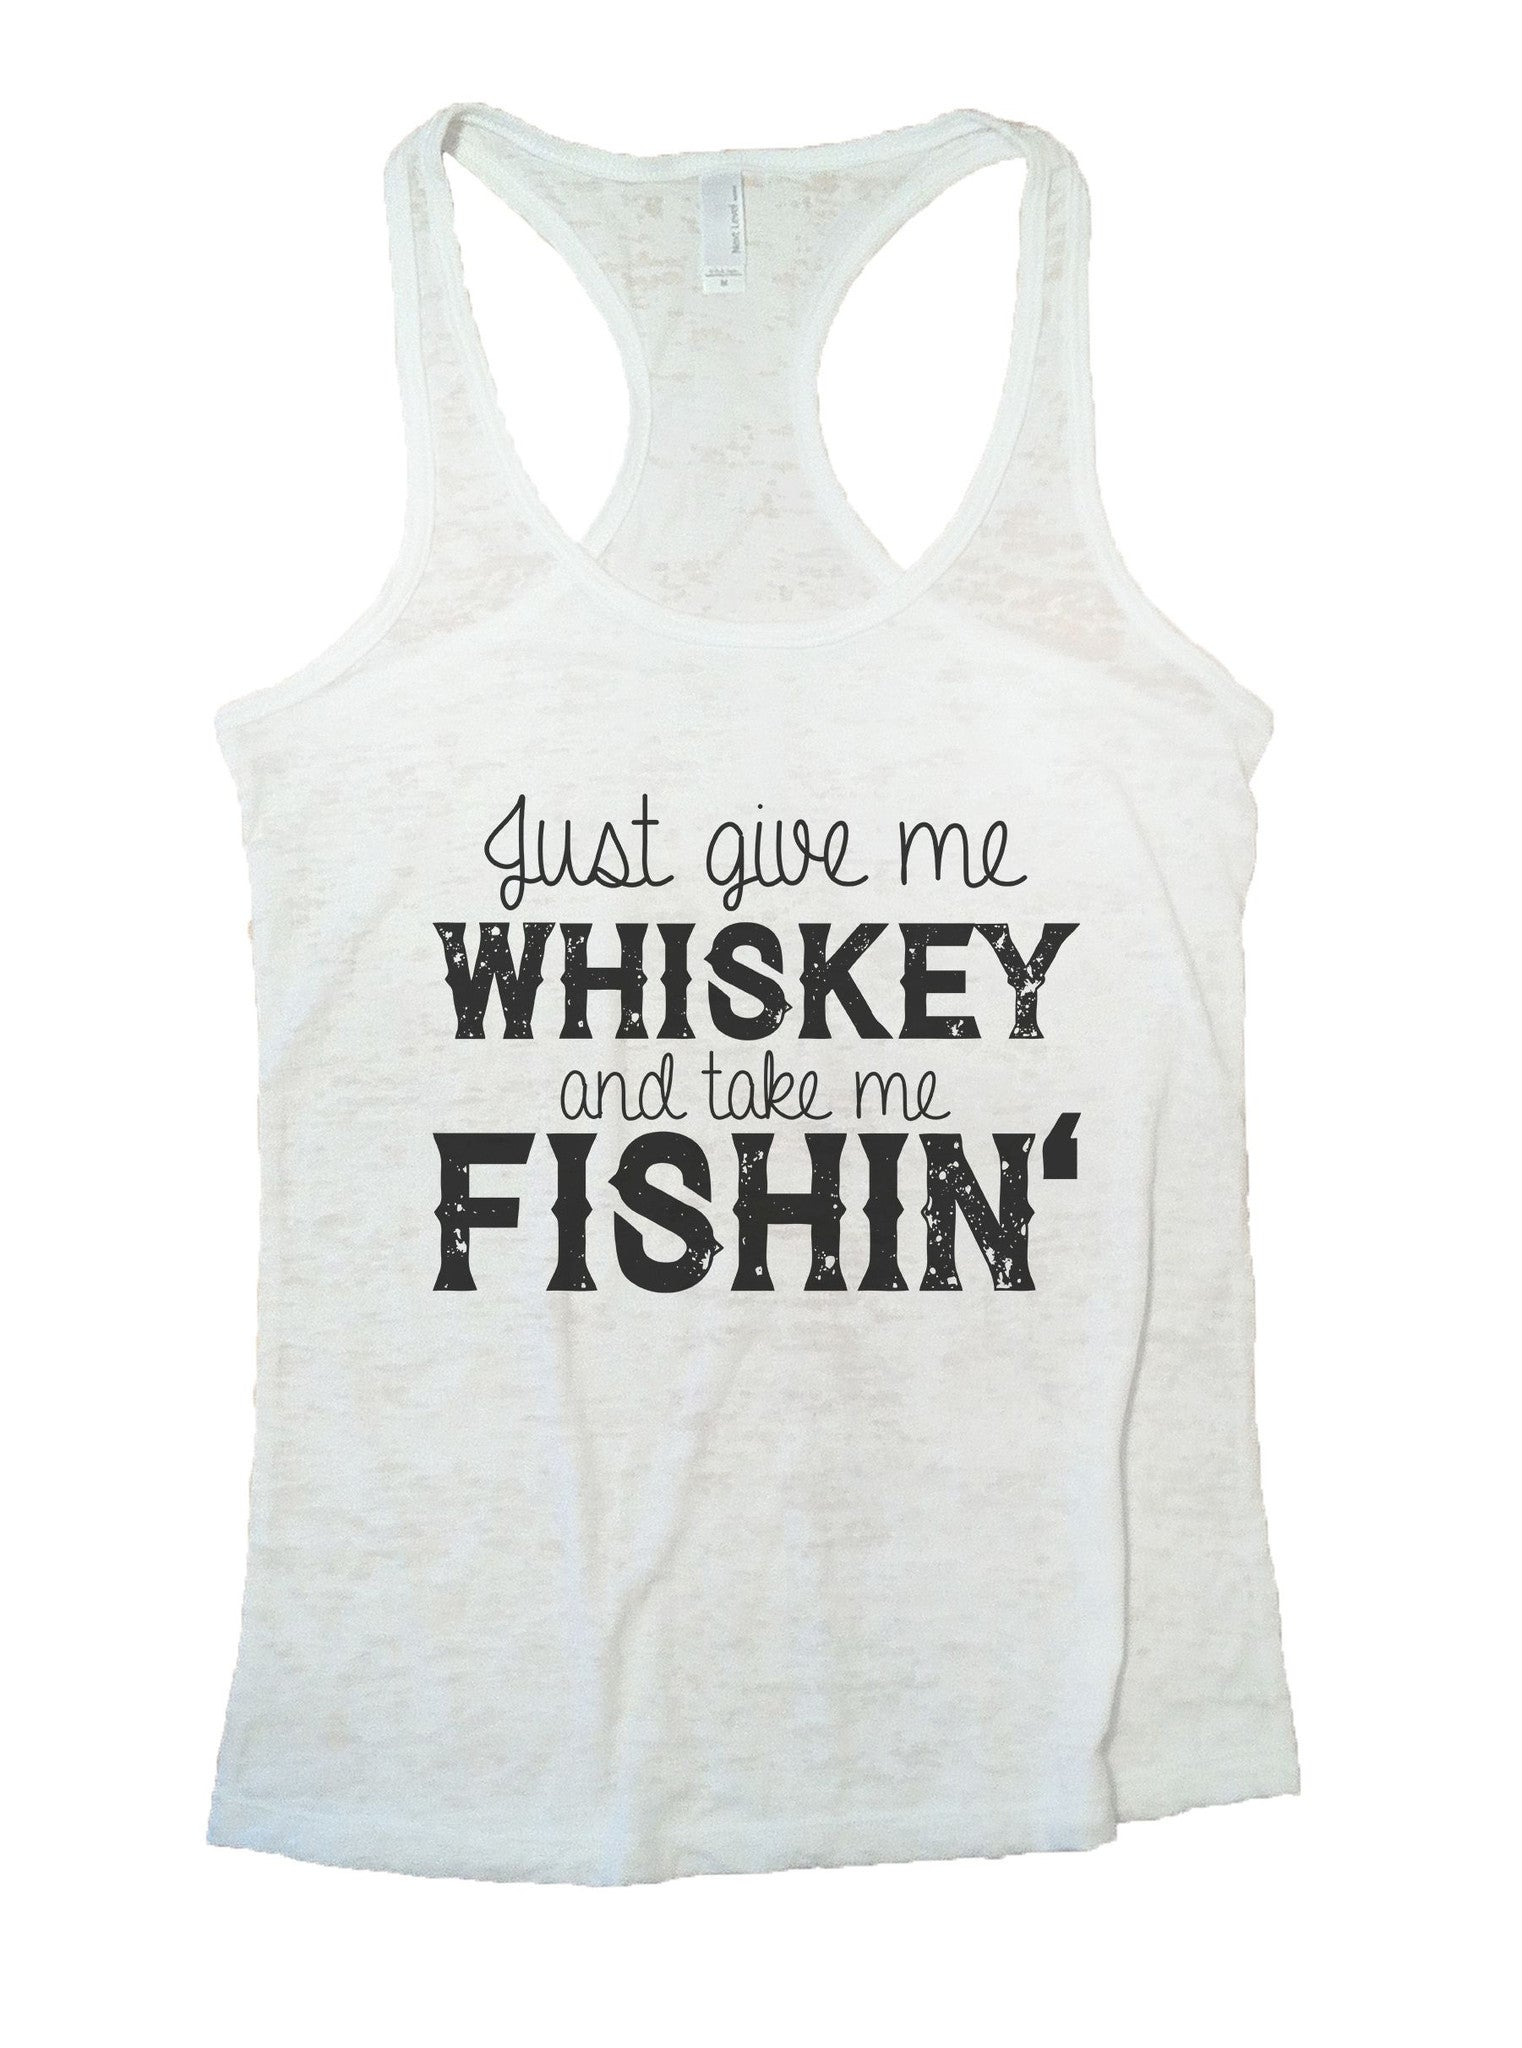 Just Give Me Whiskey And Take Me Fishin Burnout Tank Top By BurnoutTankTops.com - 1012 - Funny Shirts Tank Tops Burnouts and Triblends  - 6